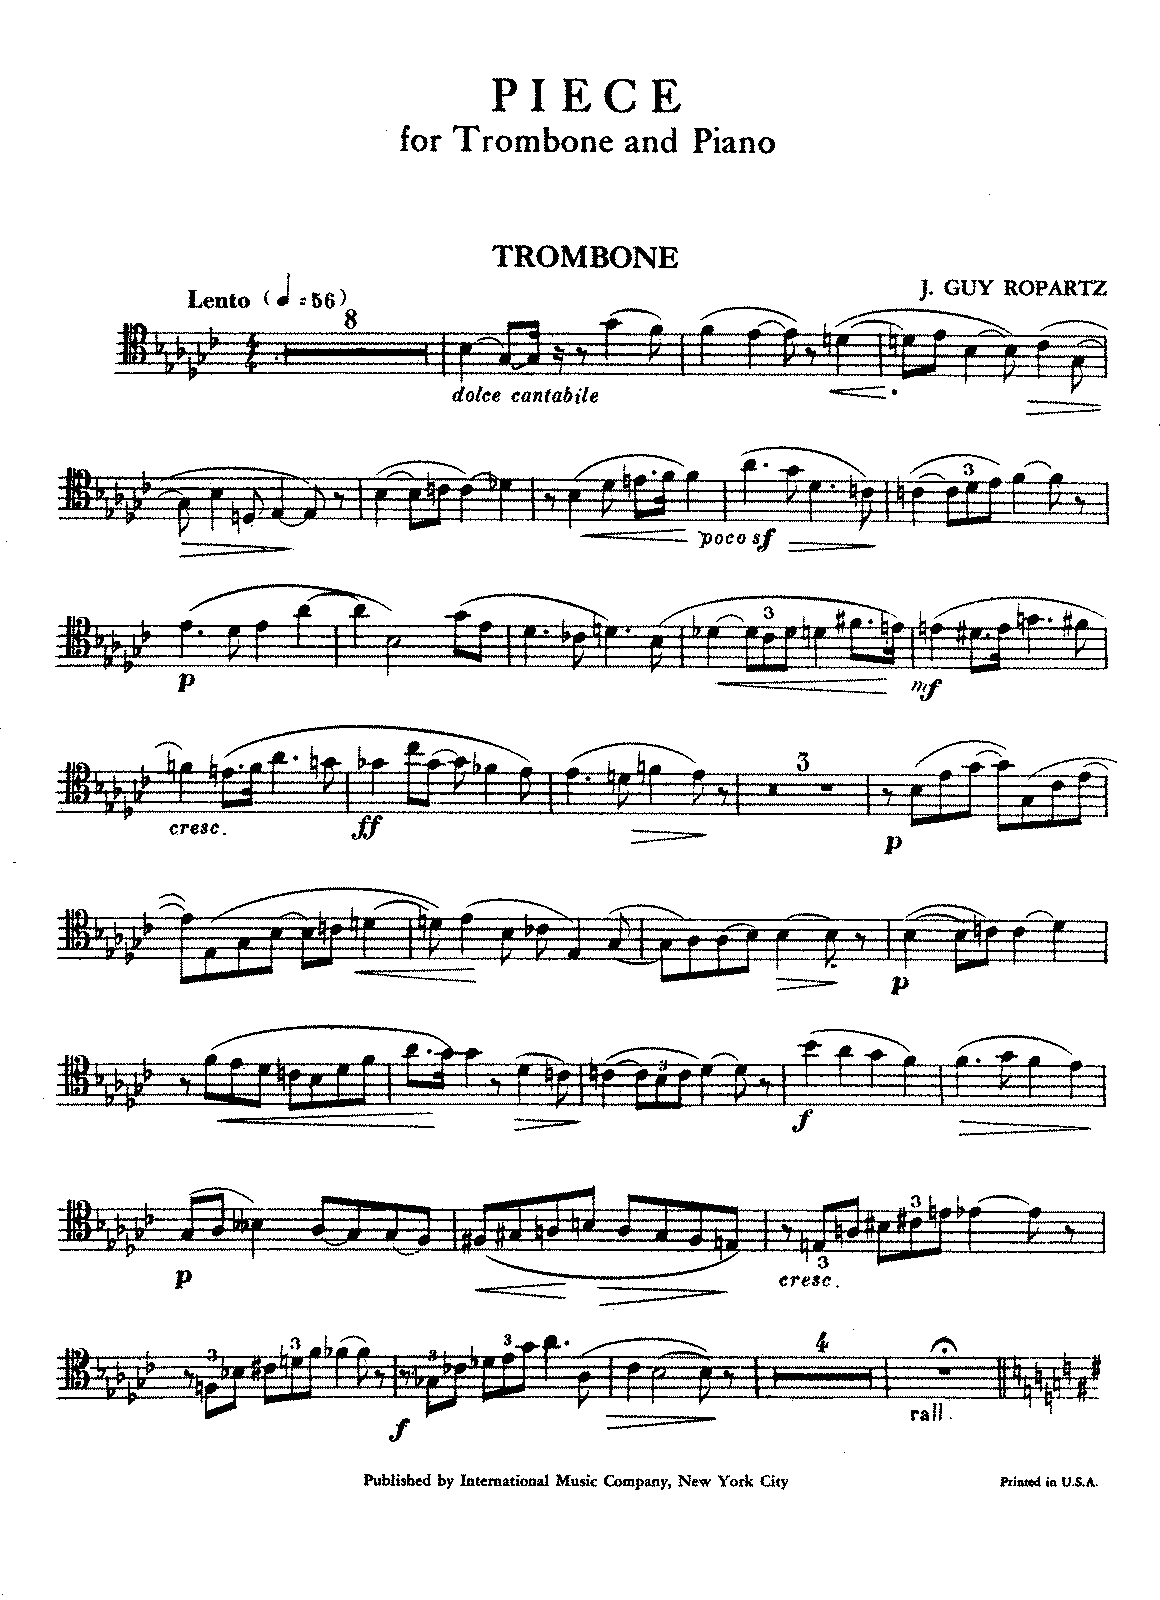 PMLP60583-Ropartz - Pièce for trombone and piano.pdf